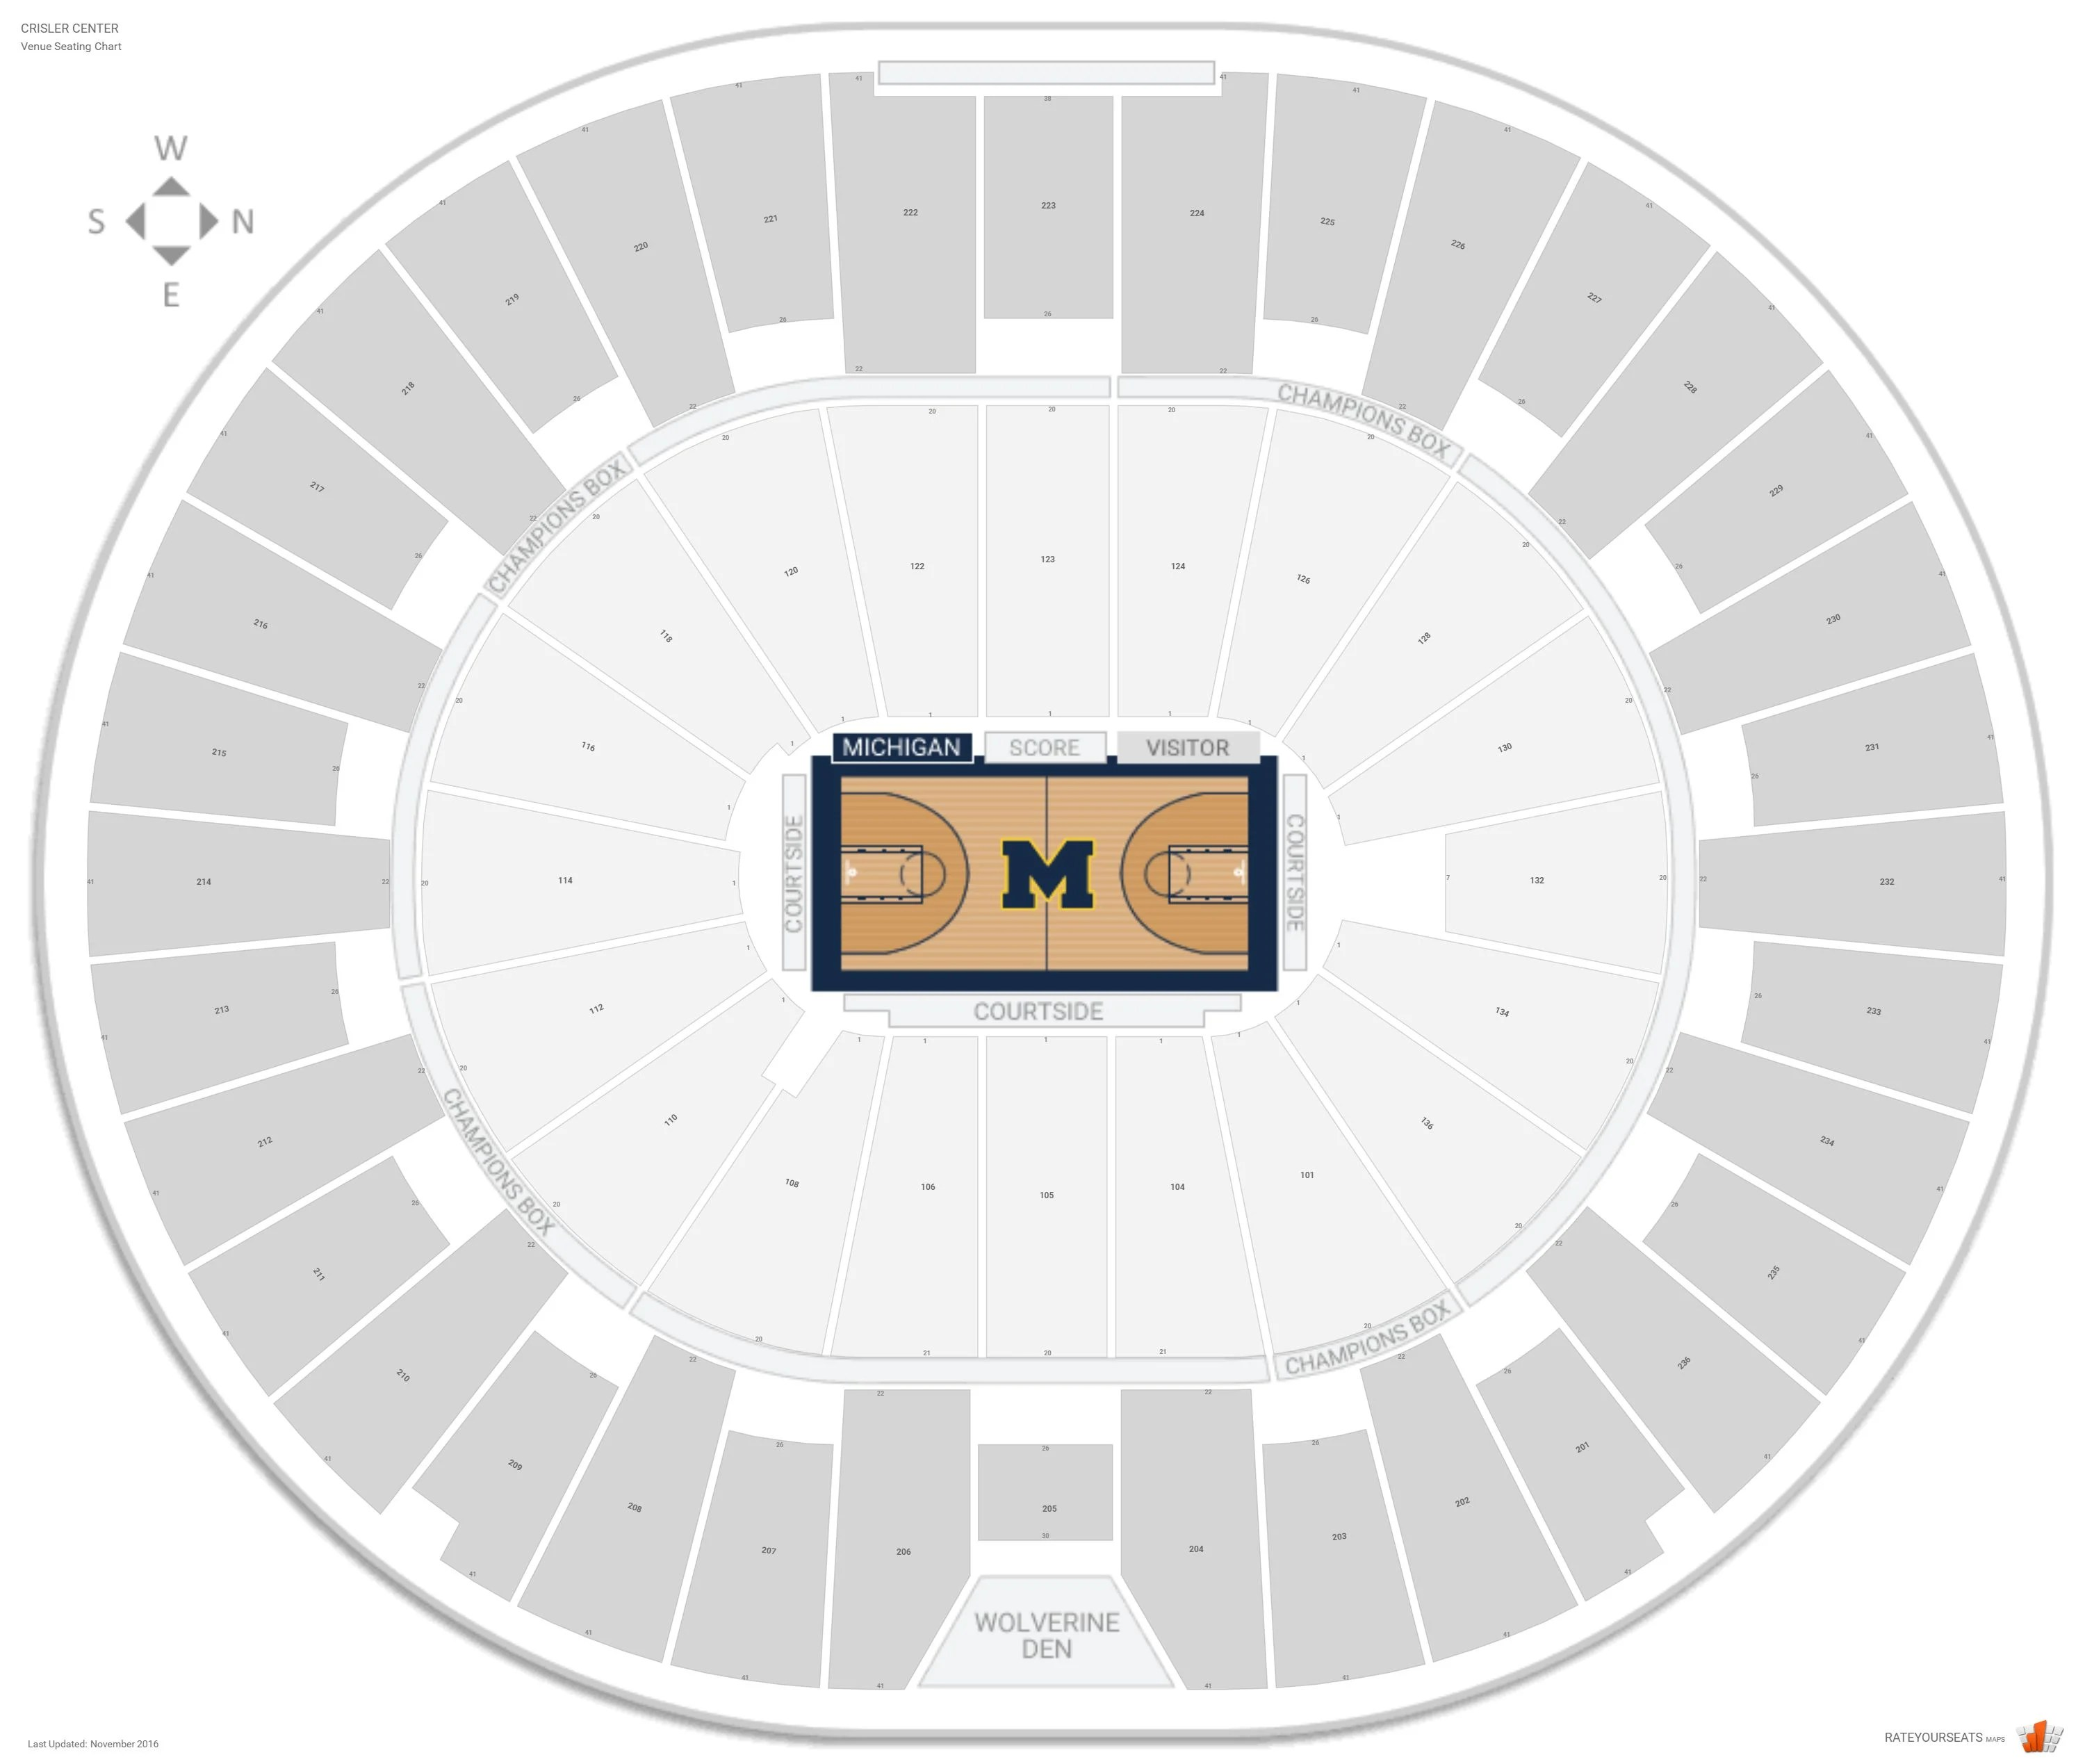 Crisler Center Michigan Seating Guide Rateyourseats Com